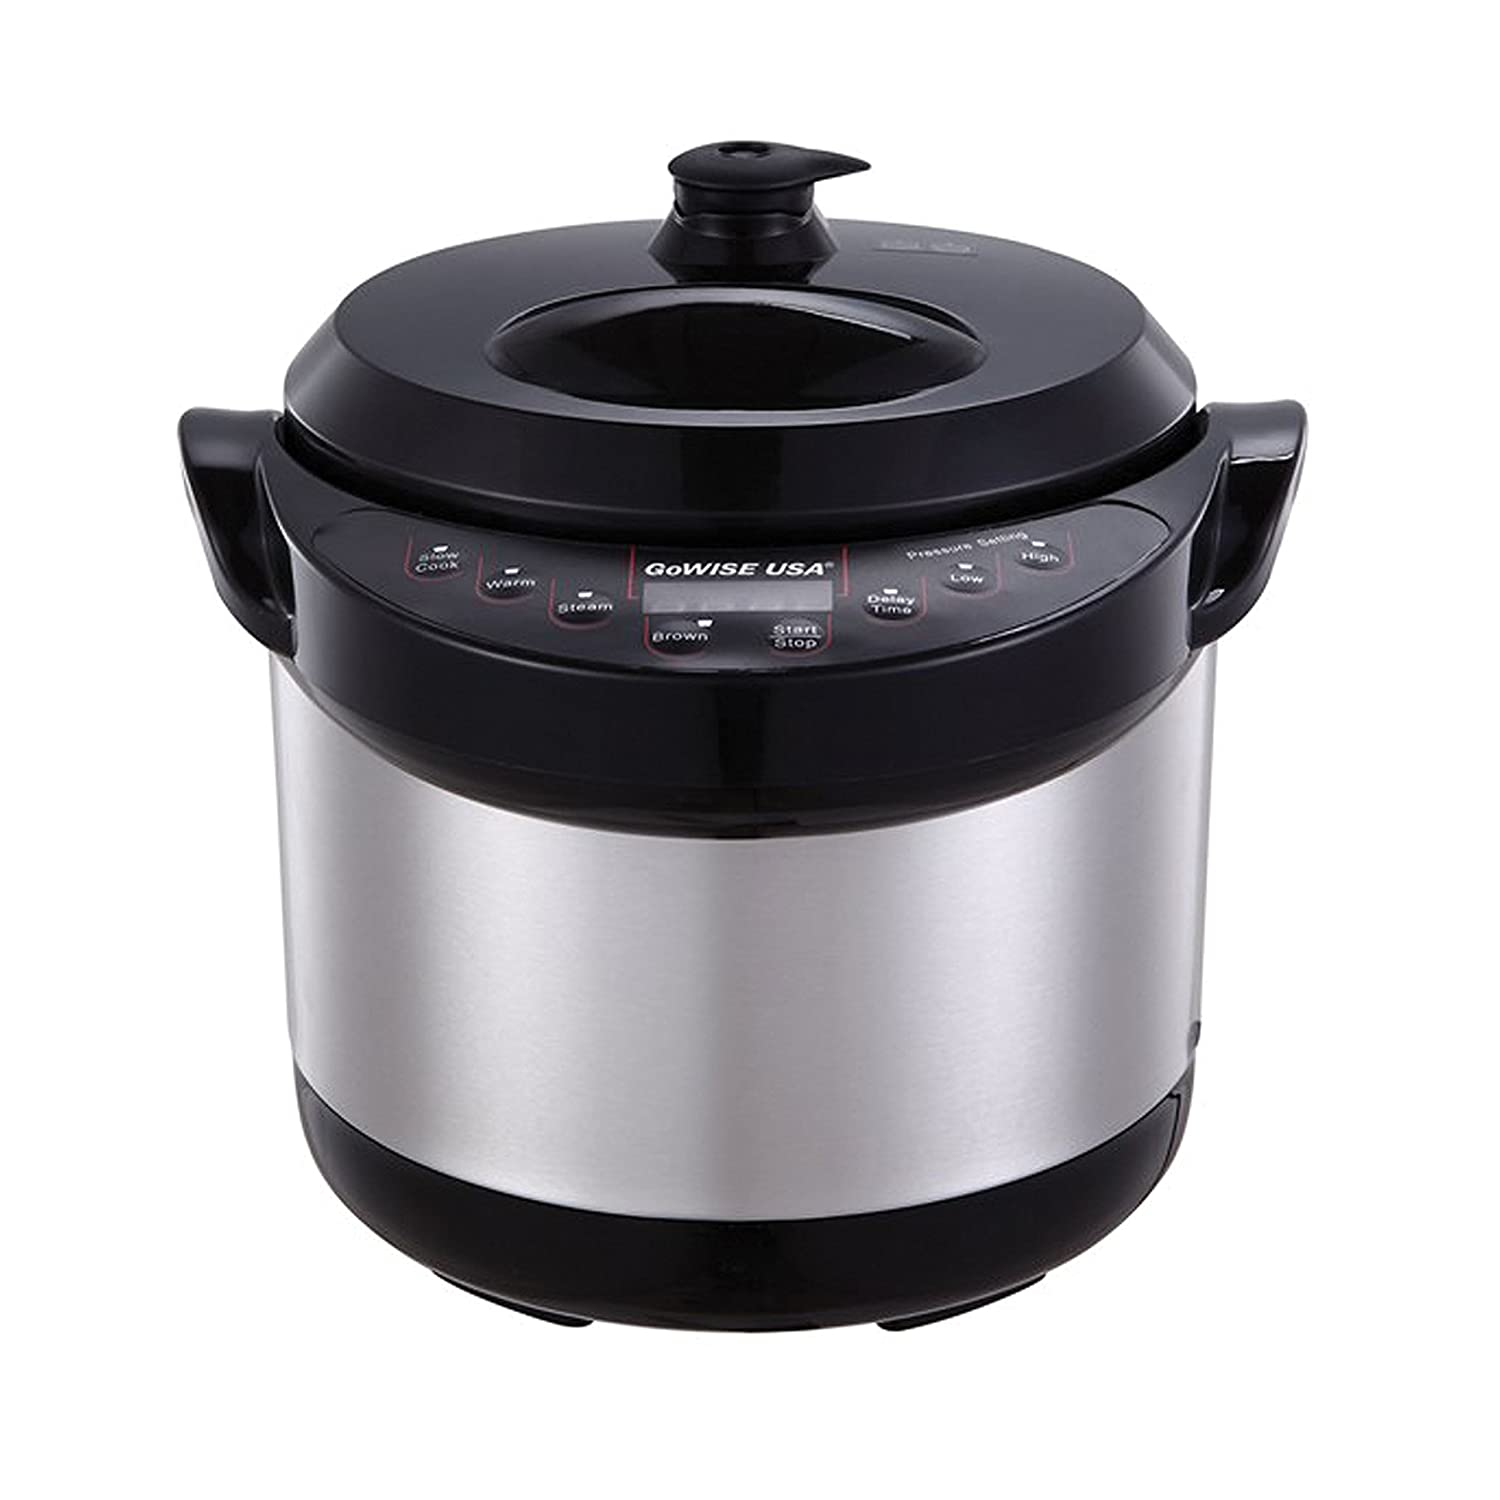 Kitchen small appliances usa - Amazon Com Gowise Usa 6 In 1 Electric Stainless Steel Pressure Cooker Slow Cooker 3 Qt Kitchen Dining